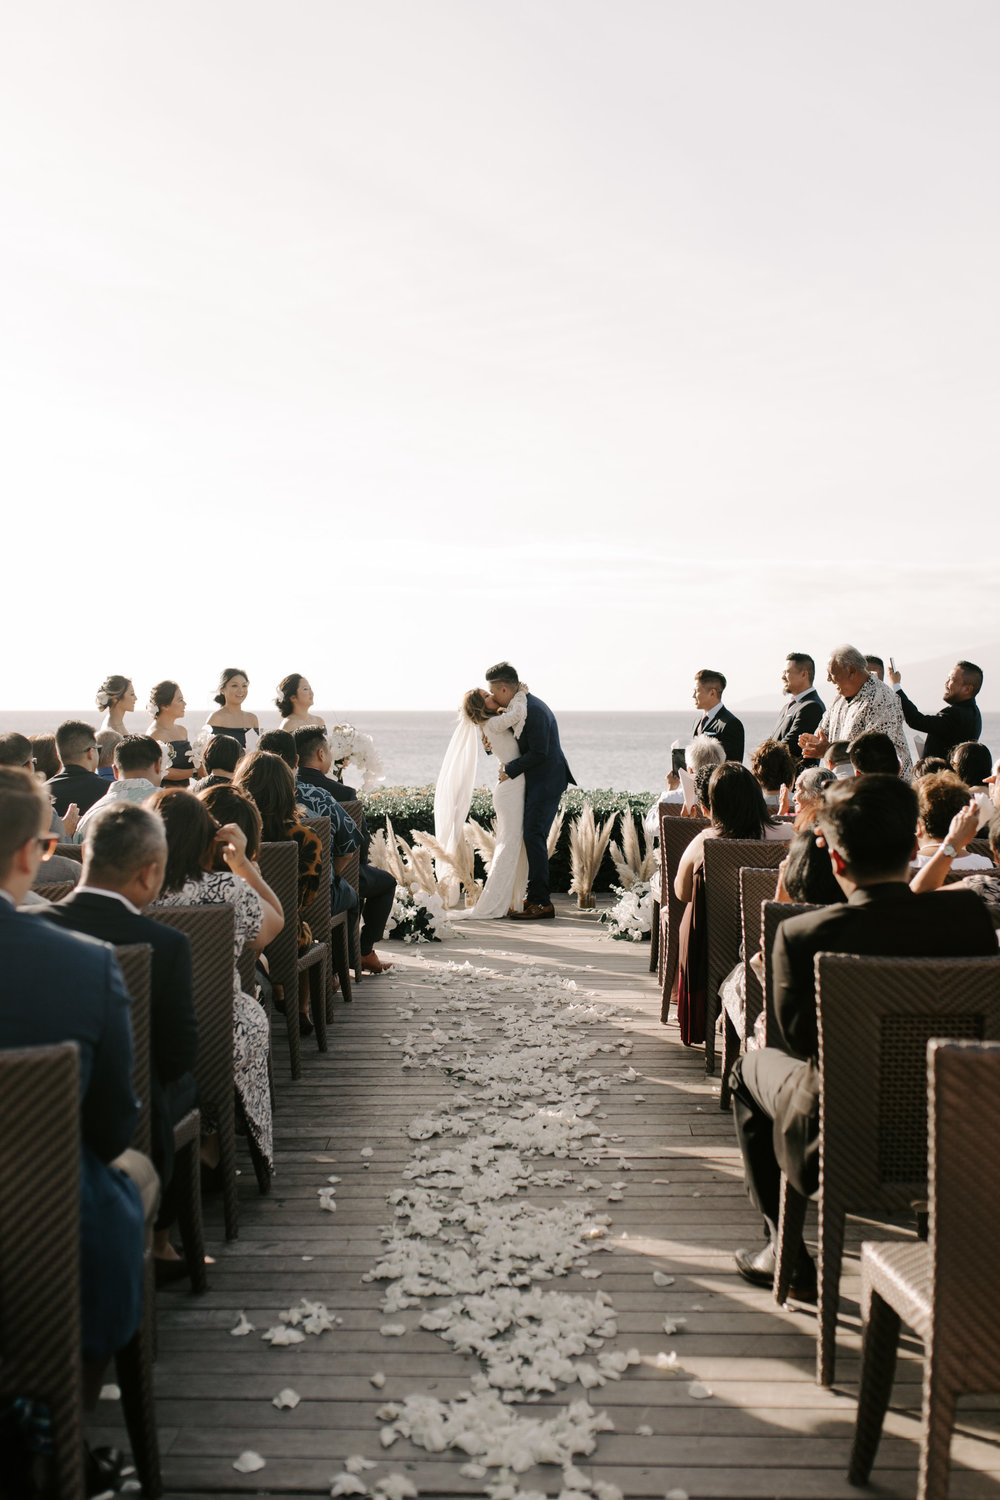 Merrimans Kapalua Maui Wedding By Maui Wedding Photographer Desiree Leilani